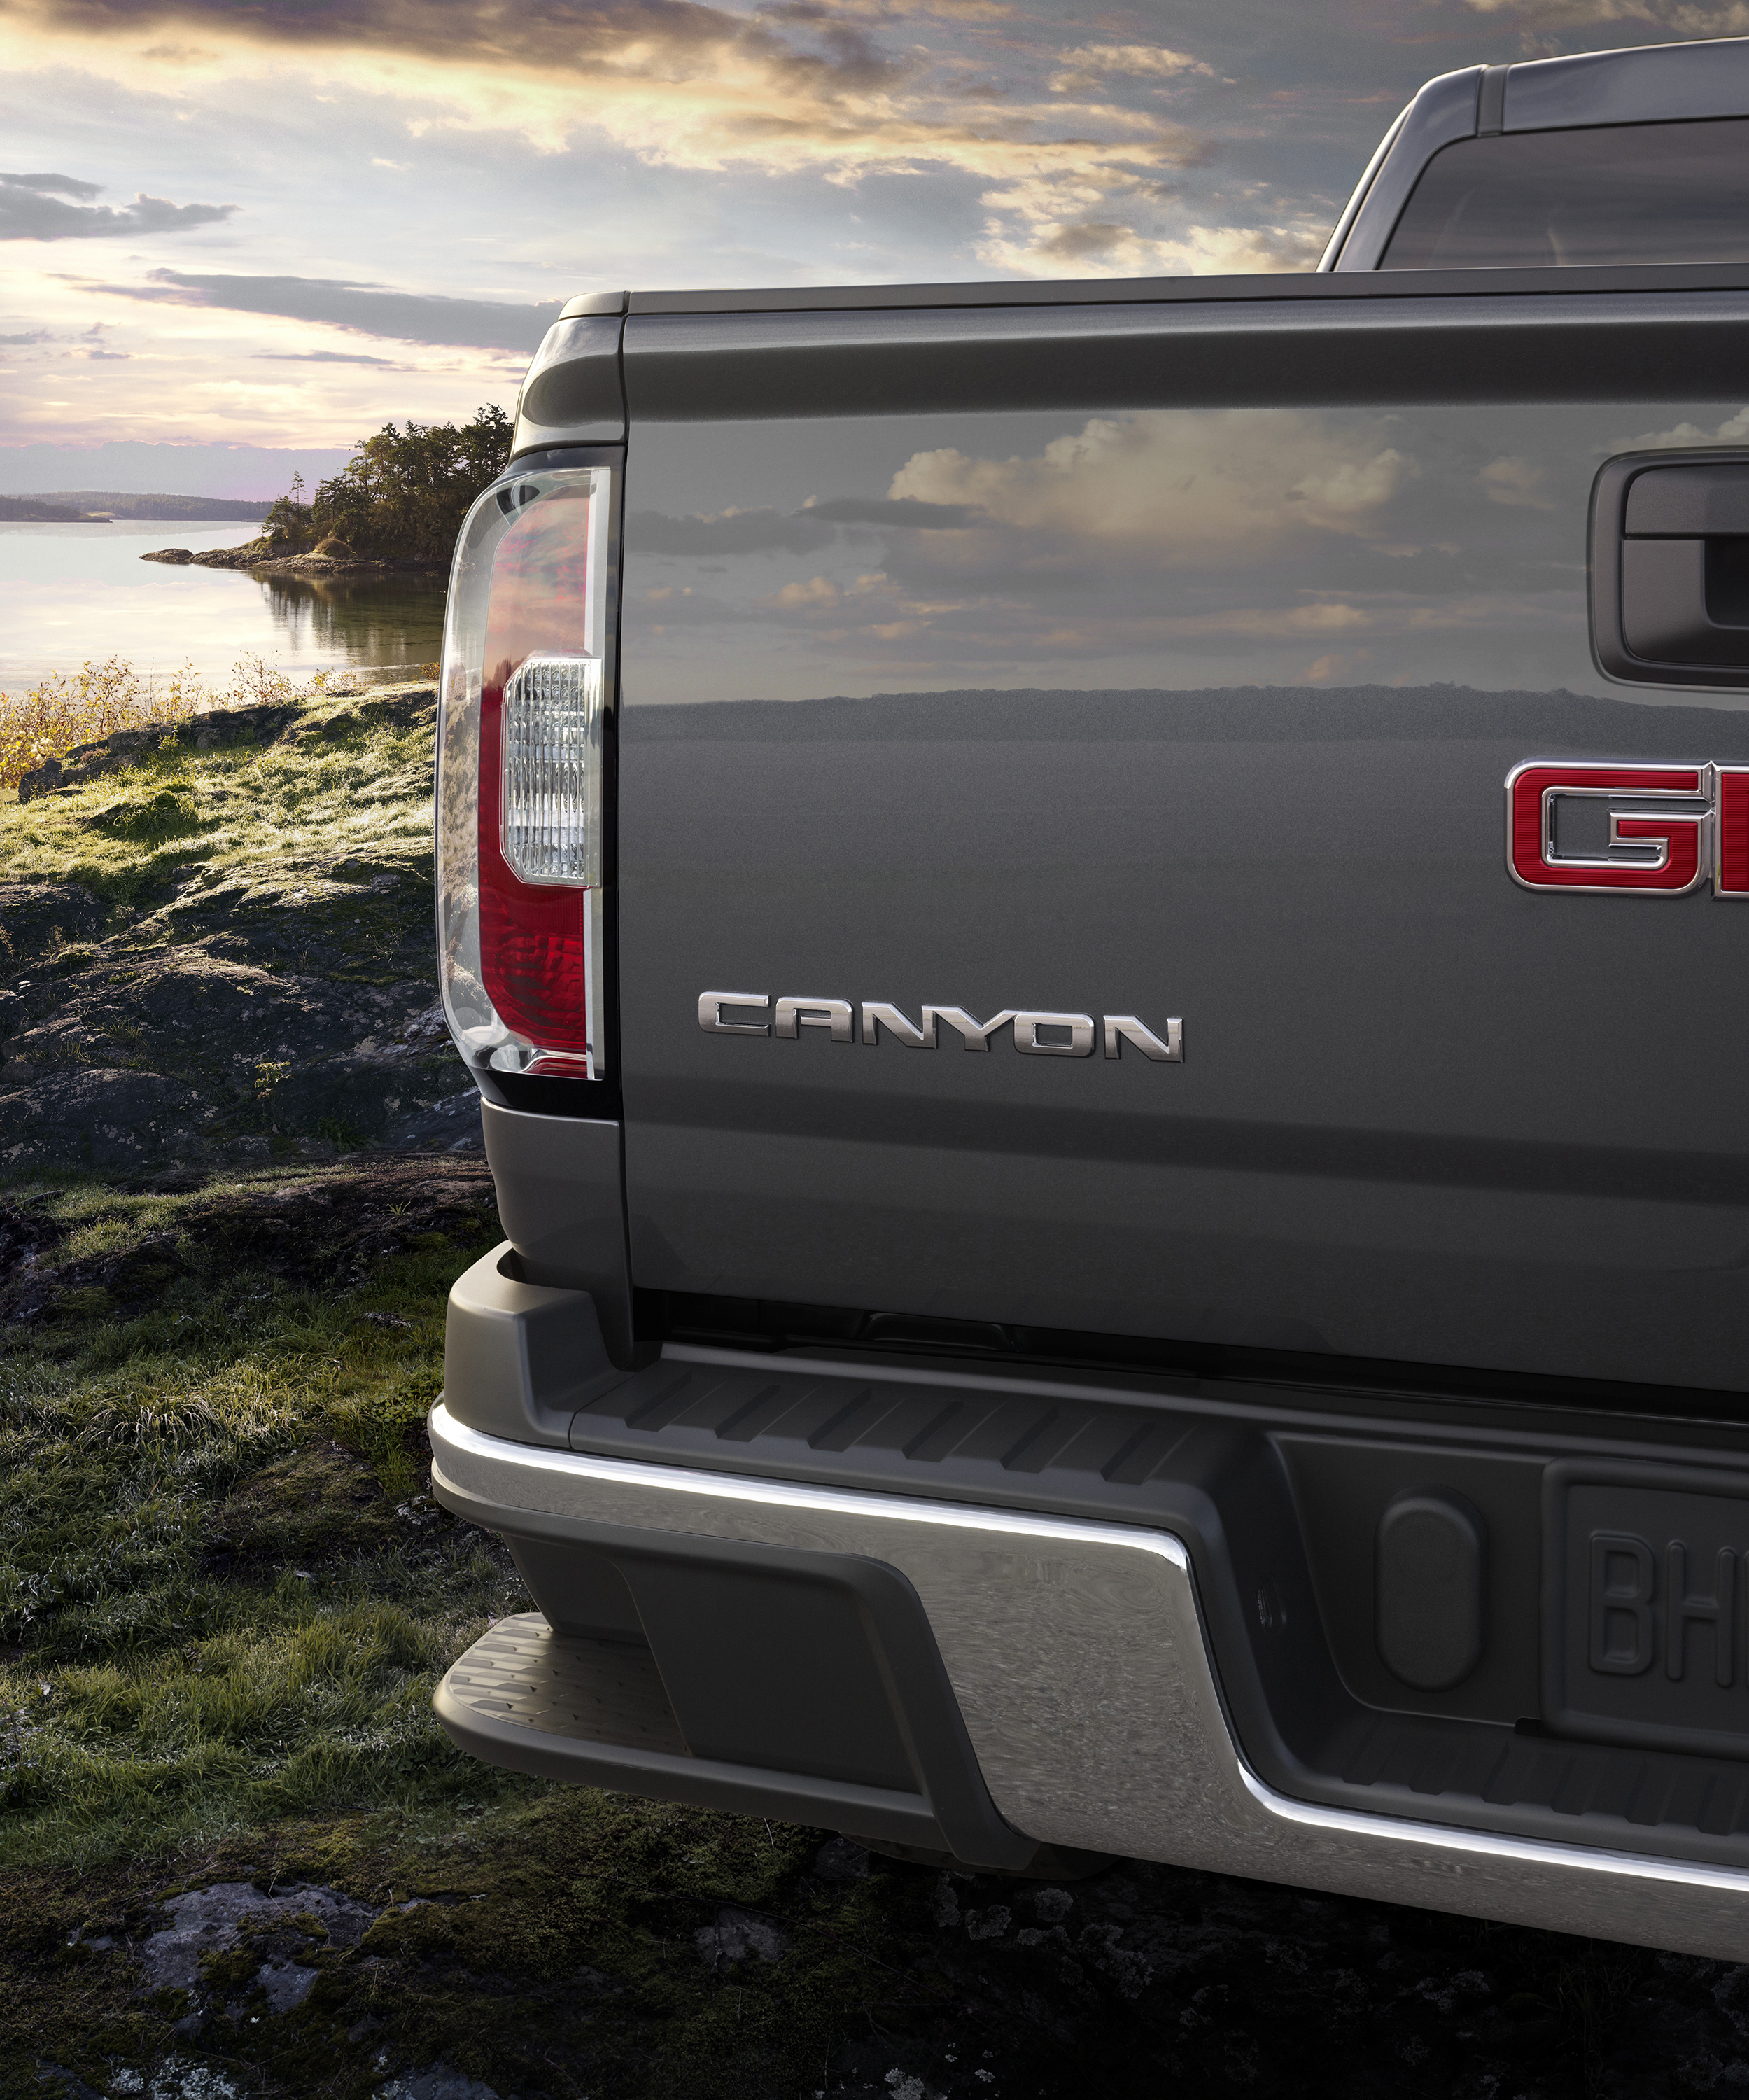 en us pressroom media photos content vehicles images mar sle galleries united states drive detail canyon gmc del pages